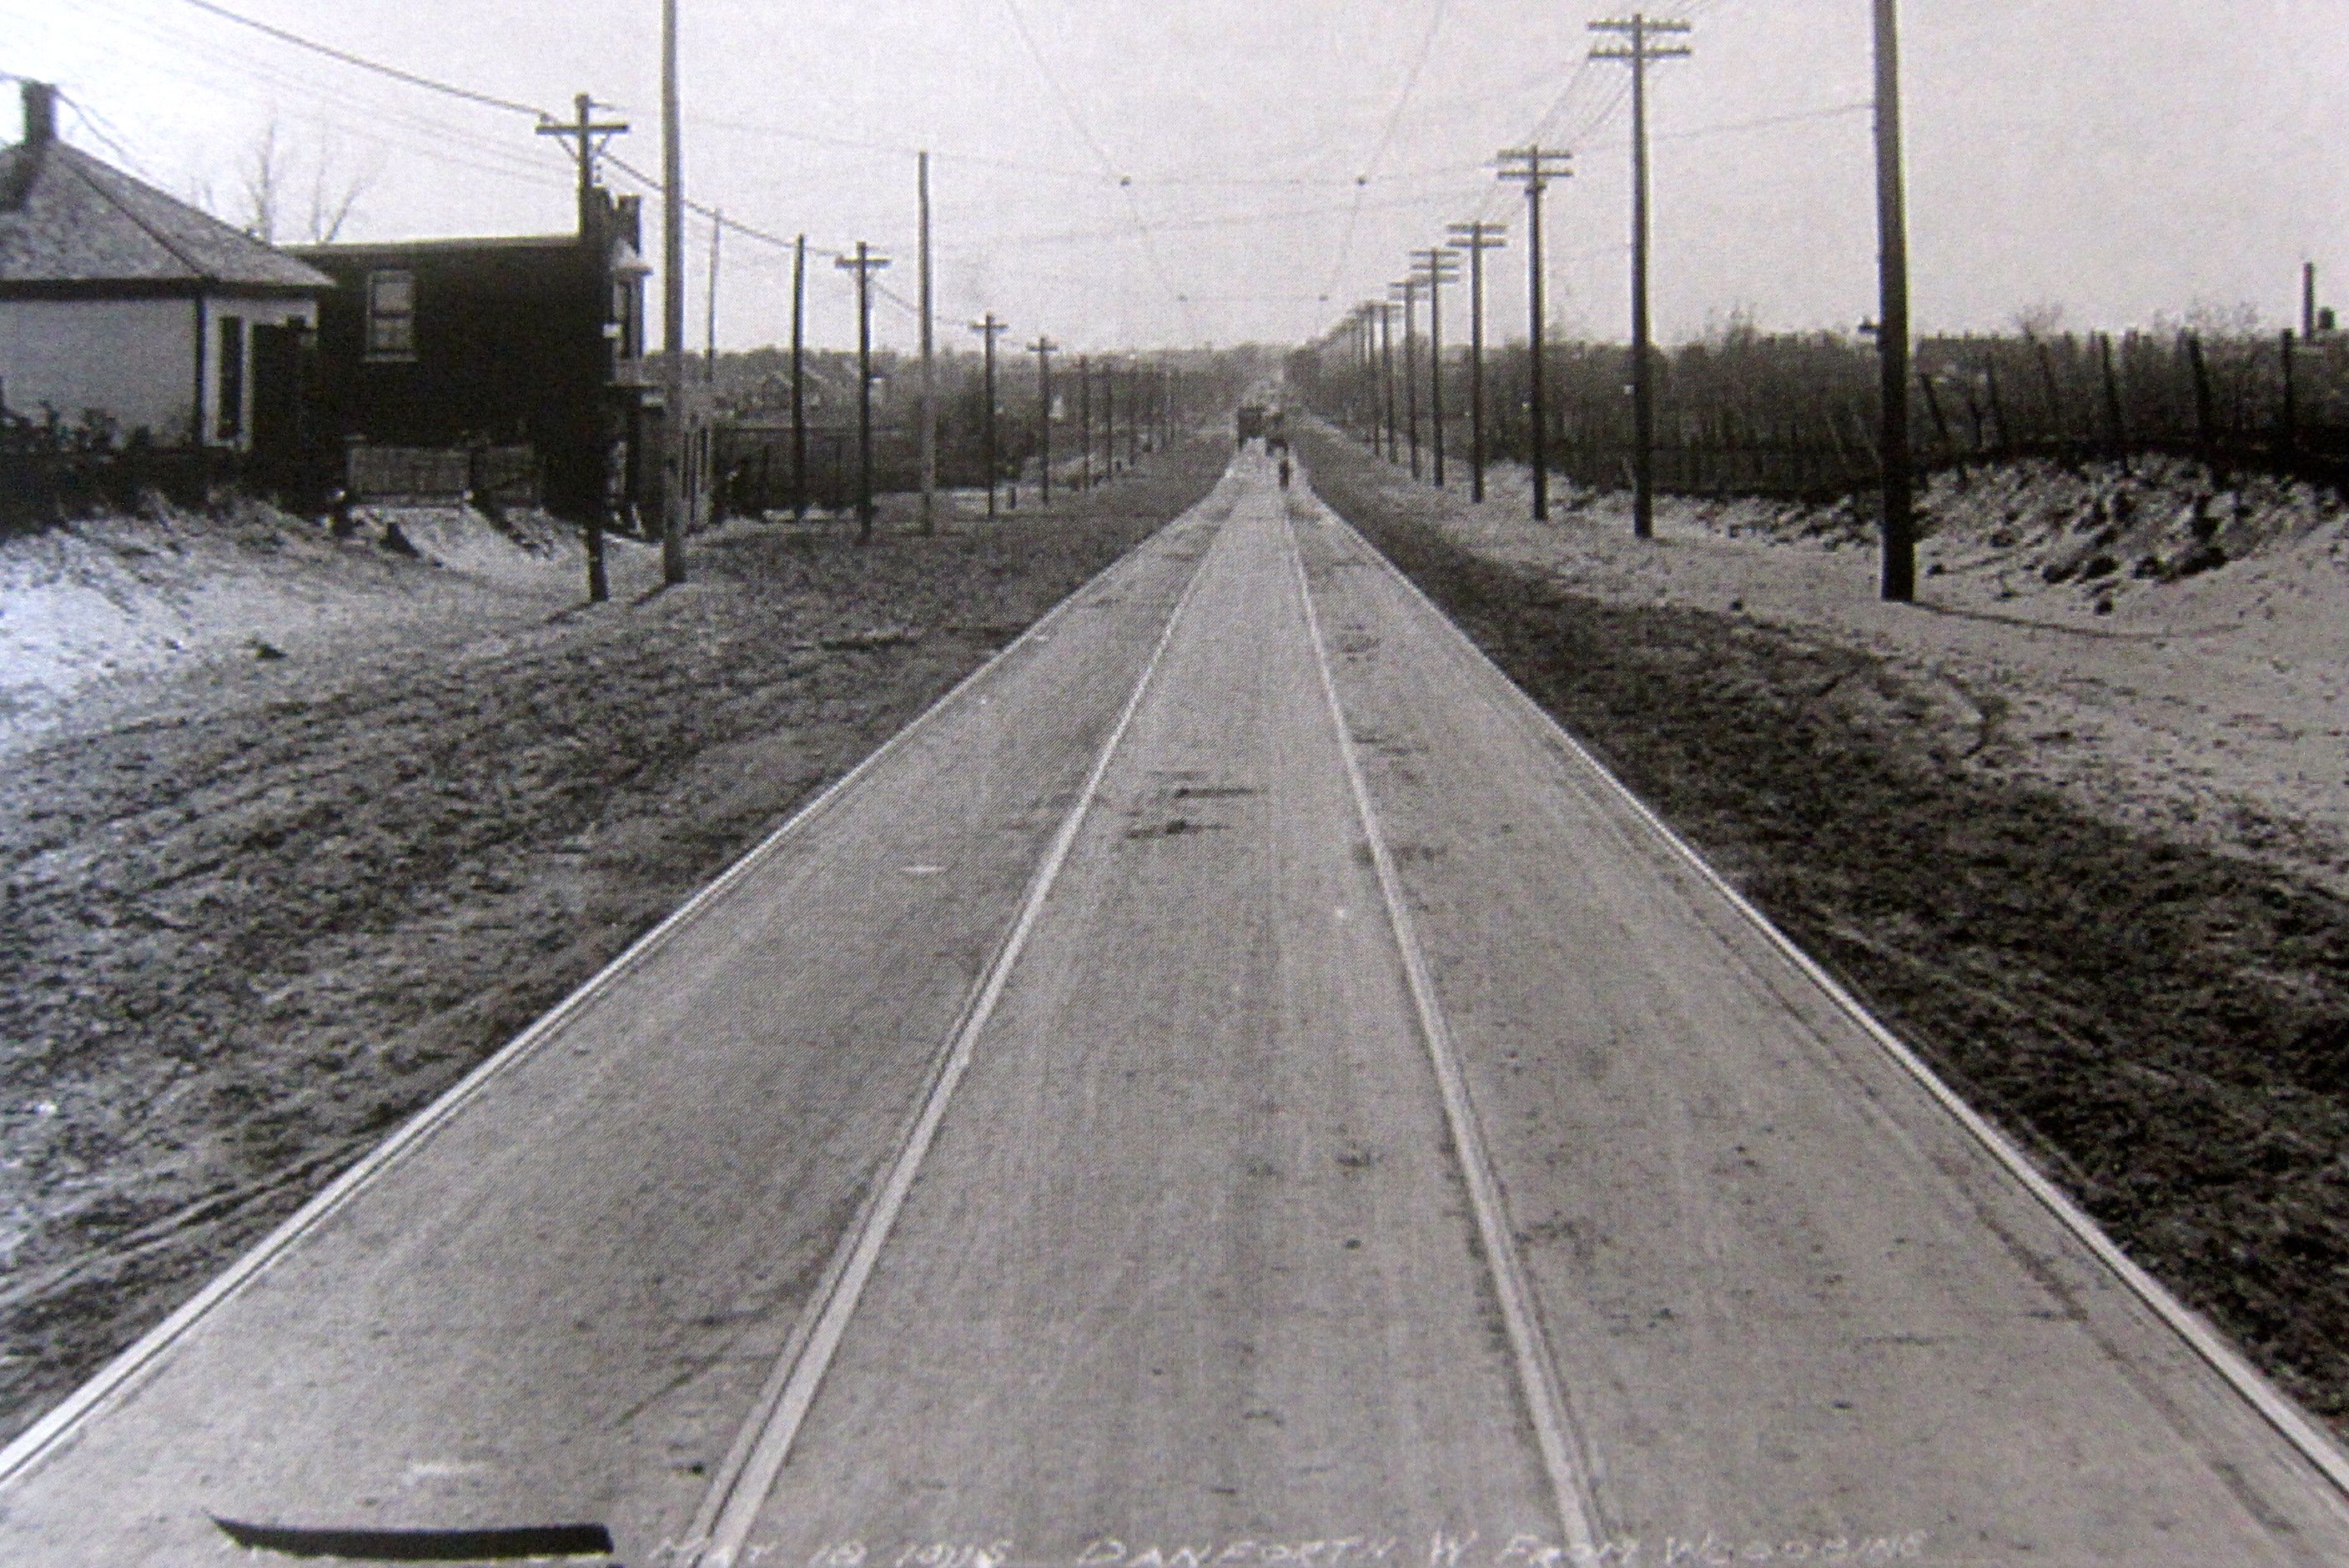 Looking west from Woodbine and Danforth in 1915, with fresh streetcar tracks and the overhead wires completed. Streetcars ran on this stretch for 51 years before being replace by the subway.